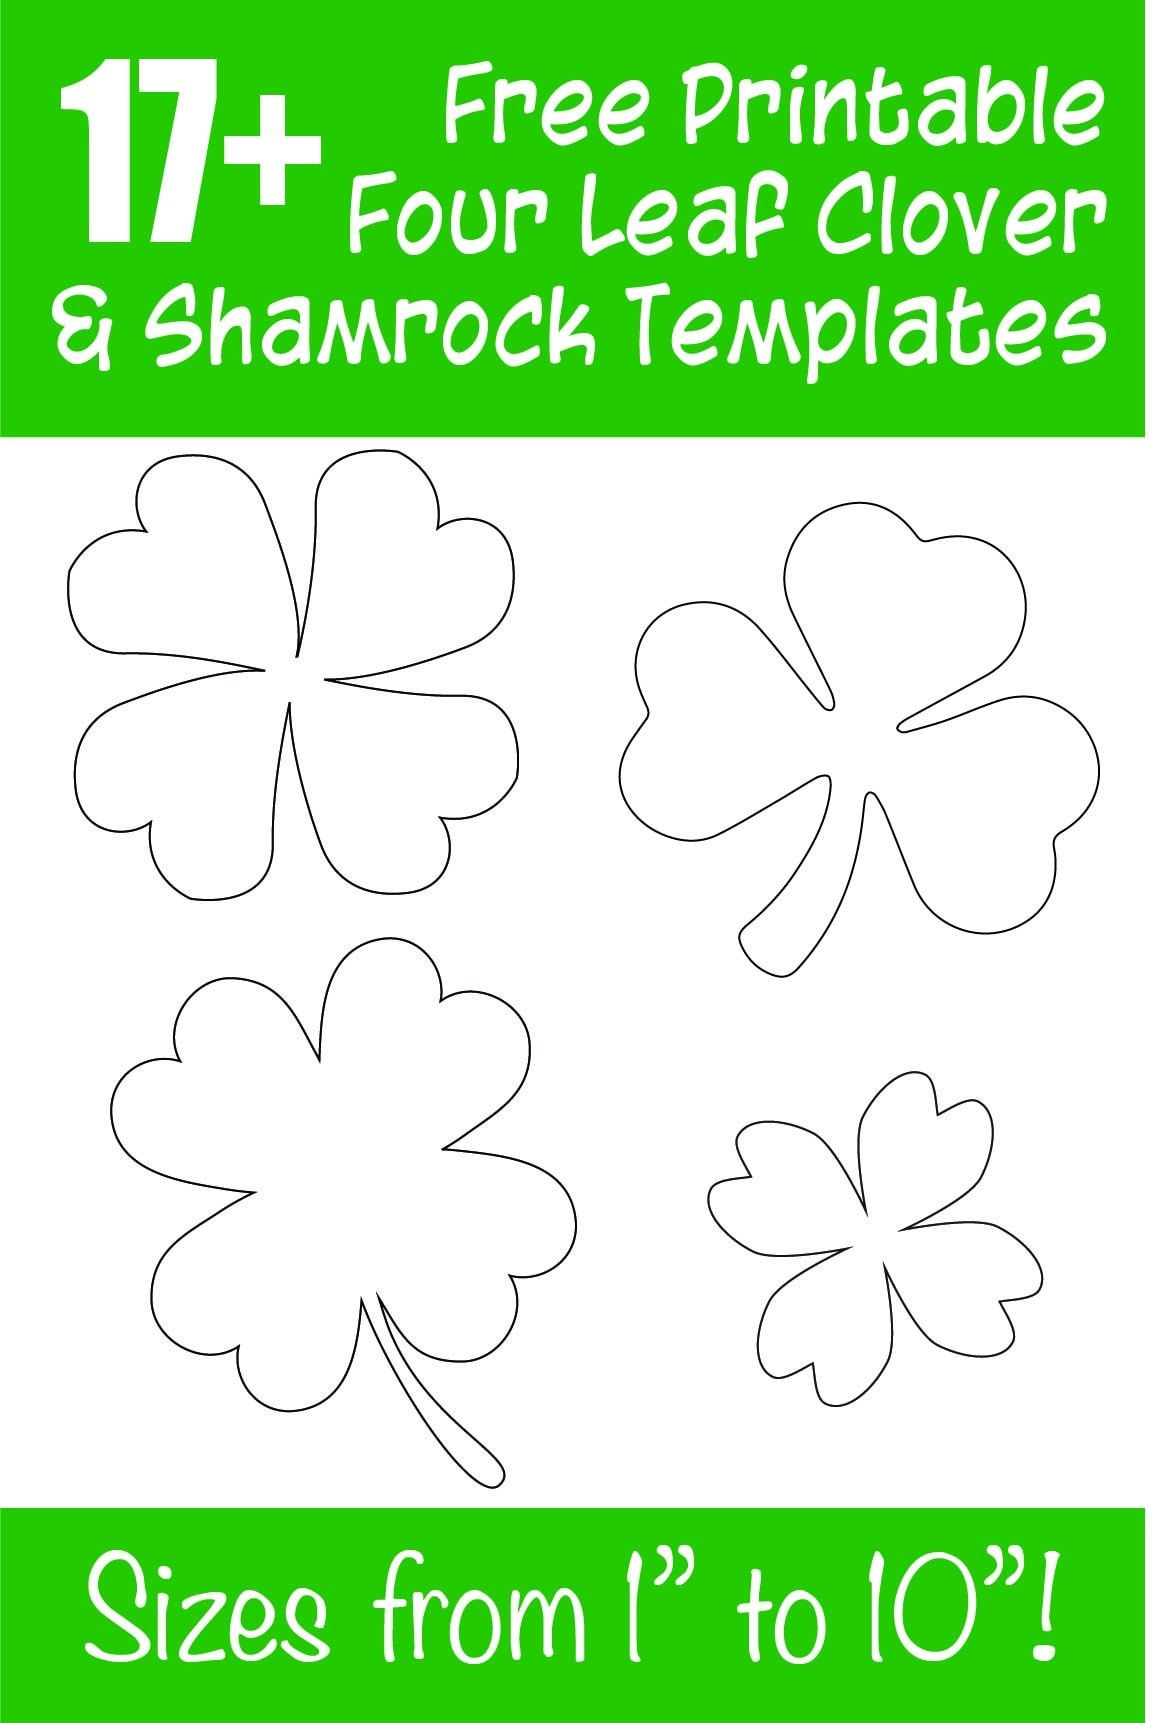 17+ Free Printable Four Leaf Clover & Shamrock Templates - The - Shamrock Template Free Printable